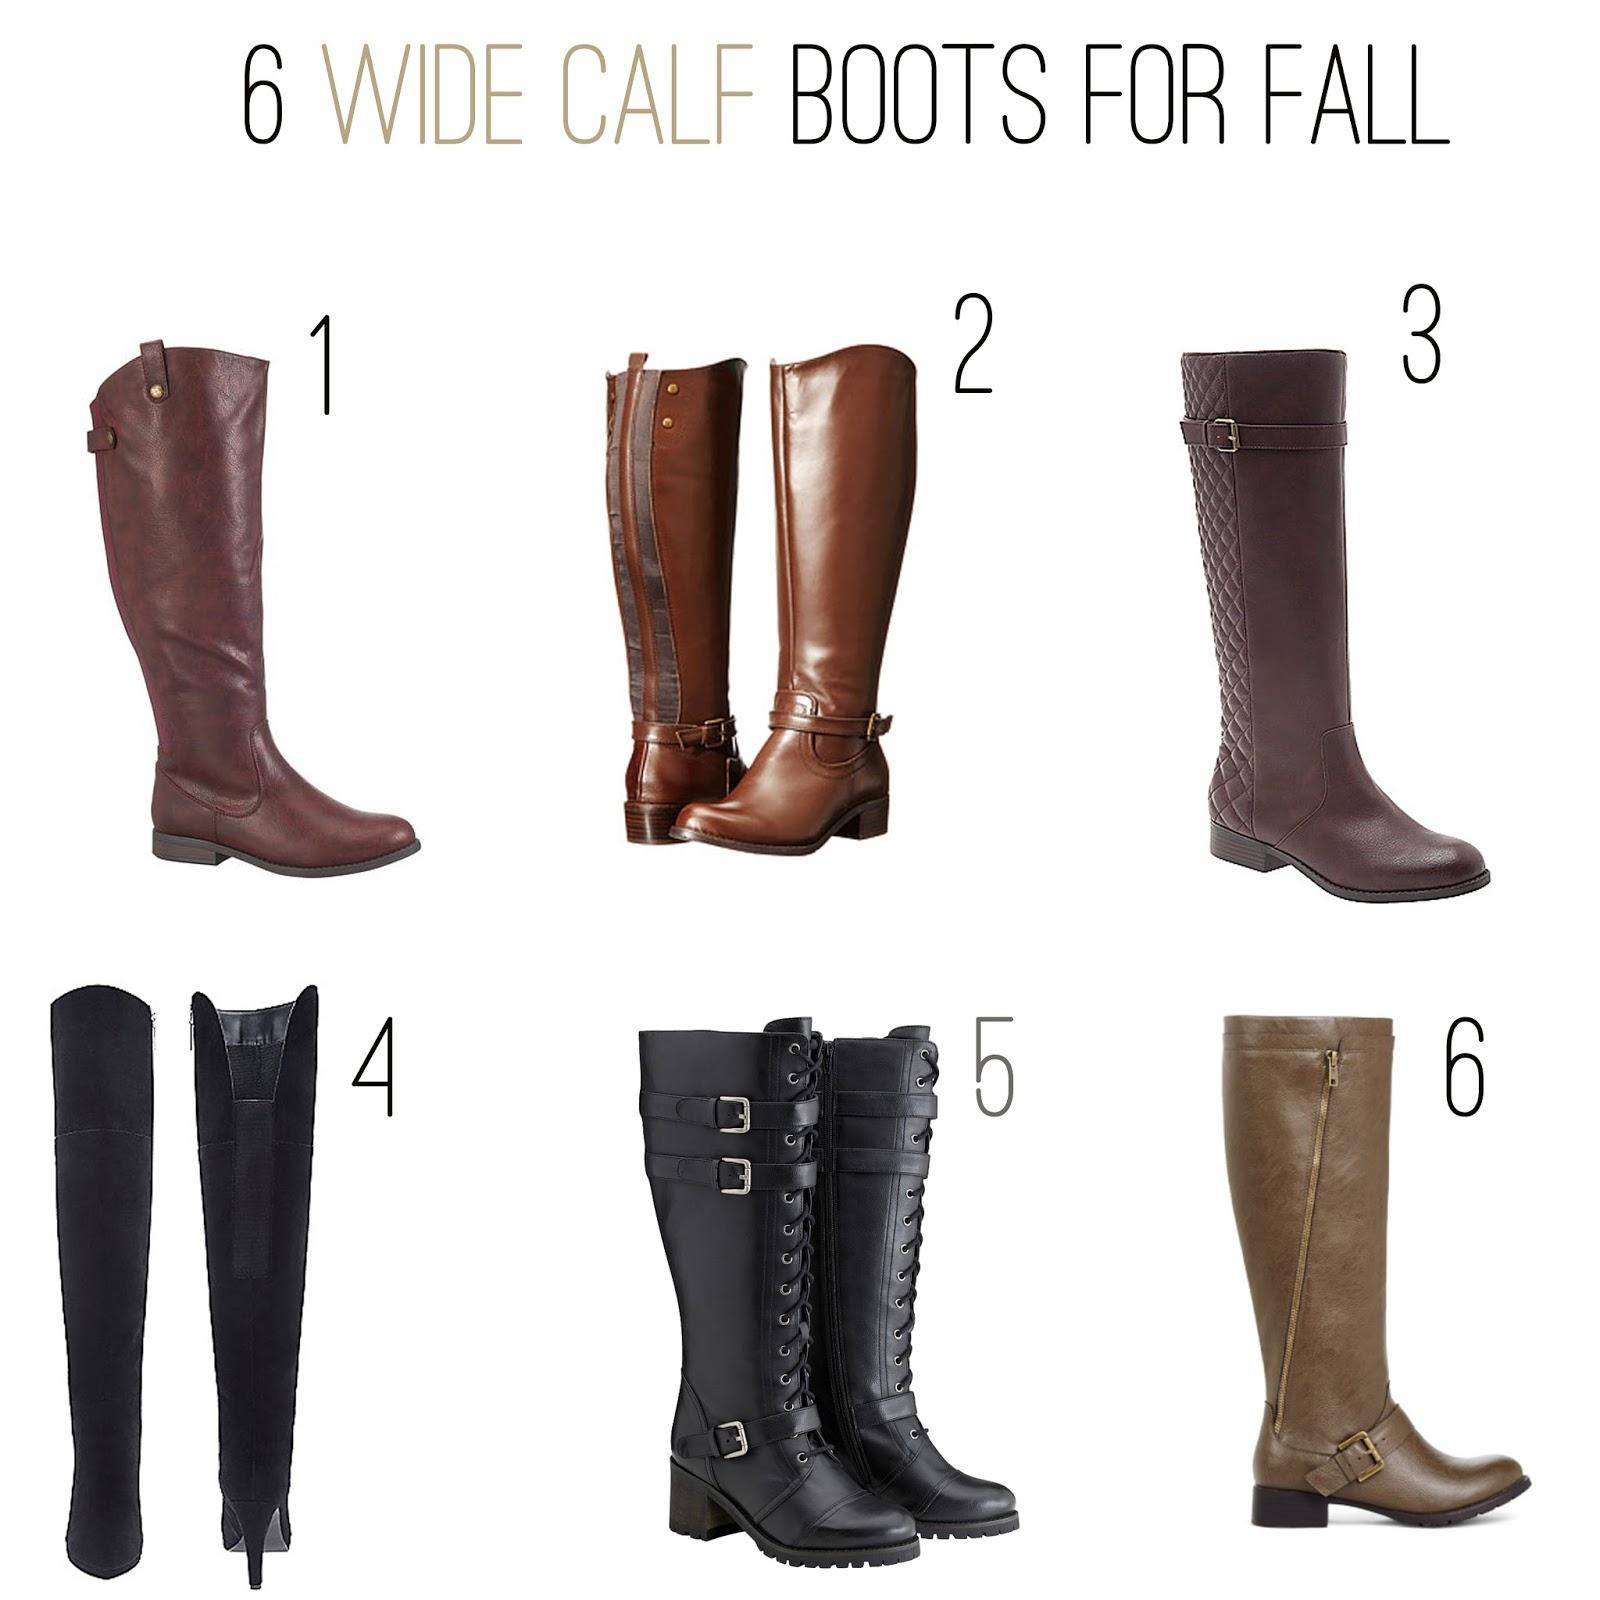 a4f4be61ab4 Wide Calf Boots for Fall - Garnerstyle